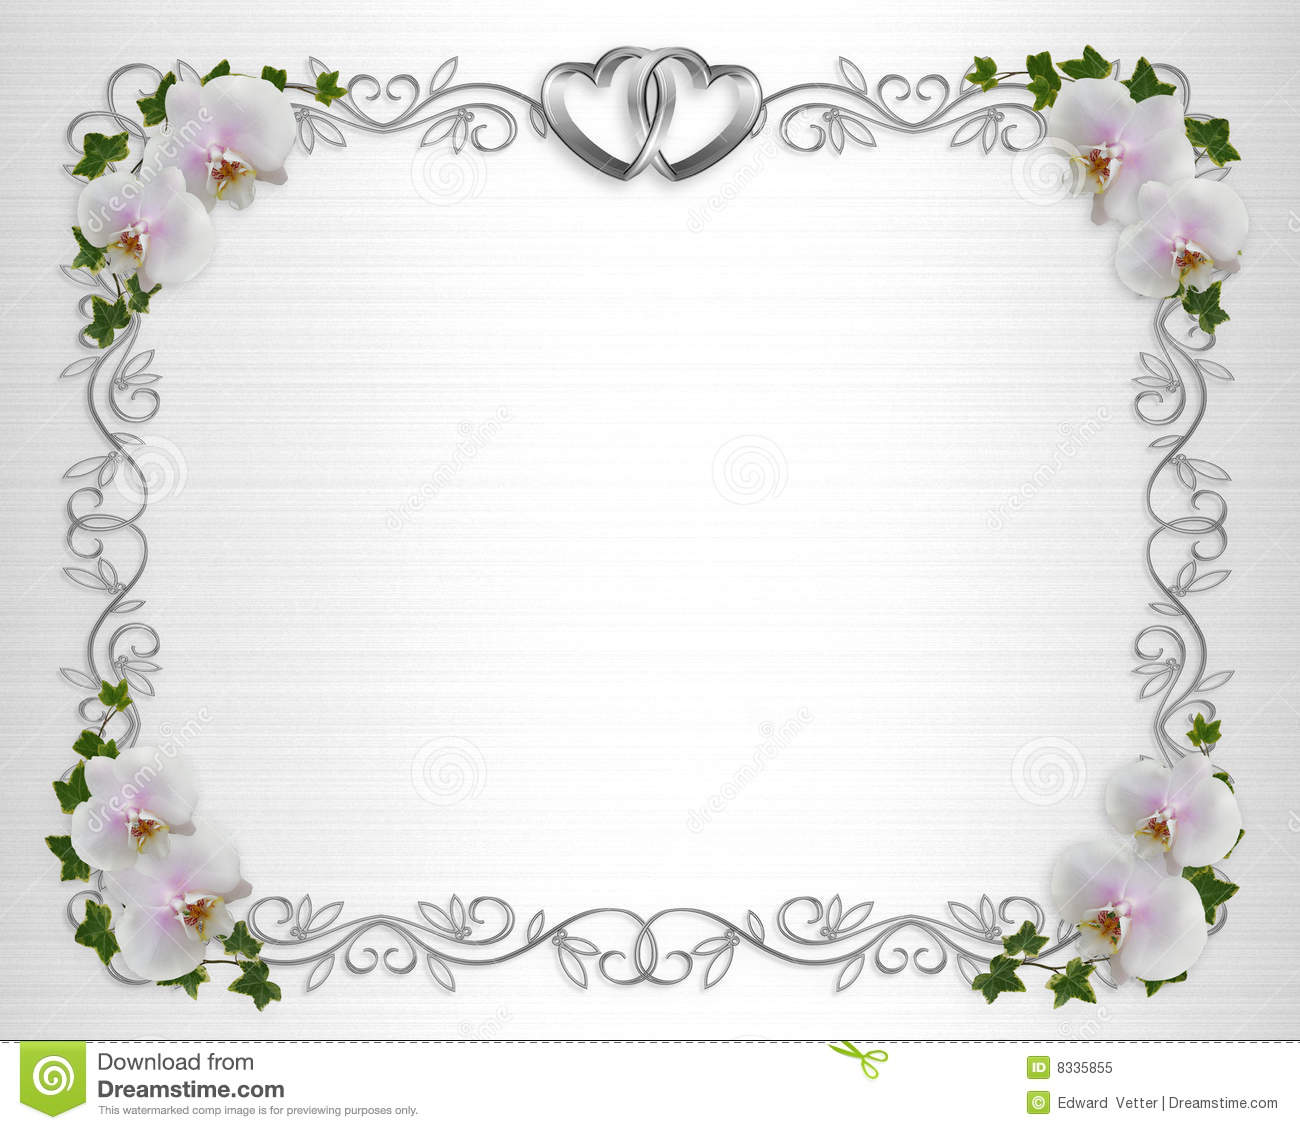 wedding invitation border orchids ivy stock illustration image 8335855. Black Bedroom Furniture Sets. Home Design Ideas